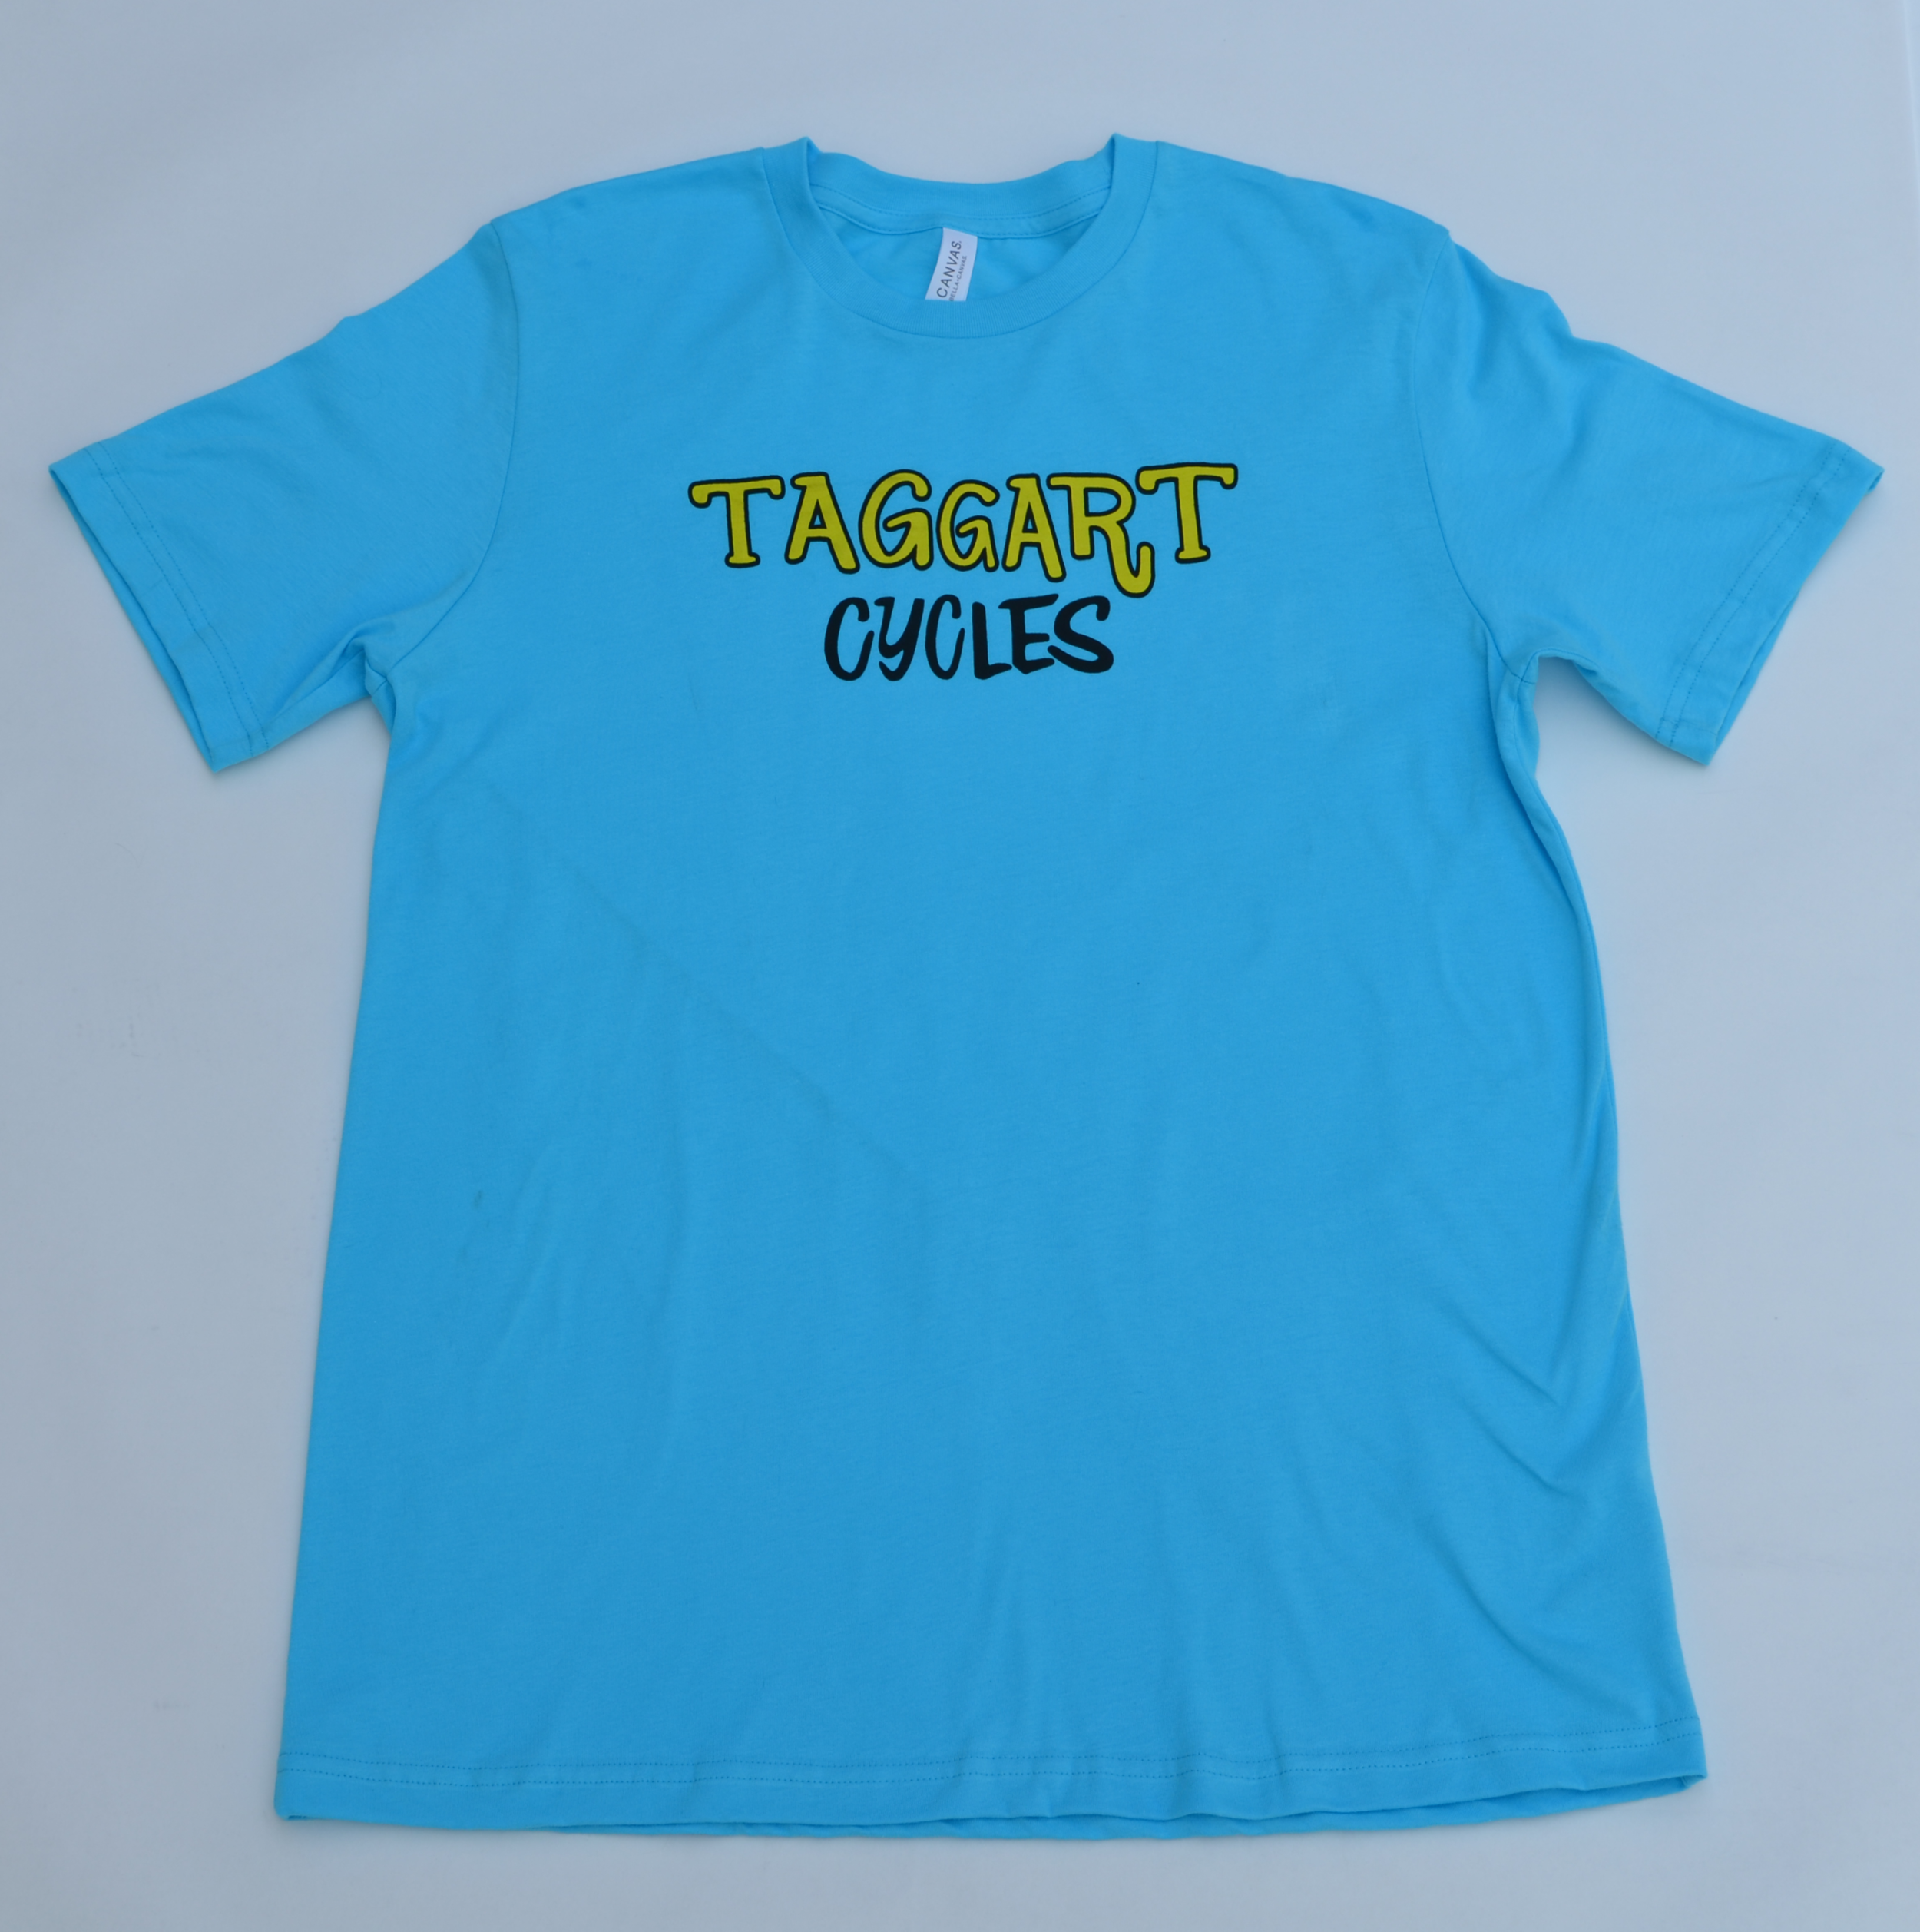 Logo T-Shirt - Are you into fancy bikes and having fun? Tell the world that you believe in the value of custom craftsmanship with your very own Taggart Cycles t-shirt. Shirts are high quality 100% cotton Bella + Canvas unisex cut t-shirts printed with non-fading, non-cracking water based ink. Head over to my Etsy shop to purchase.